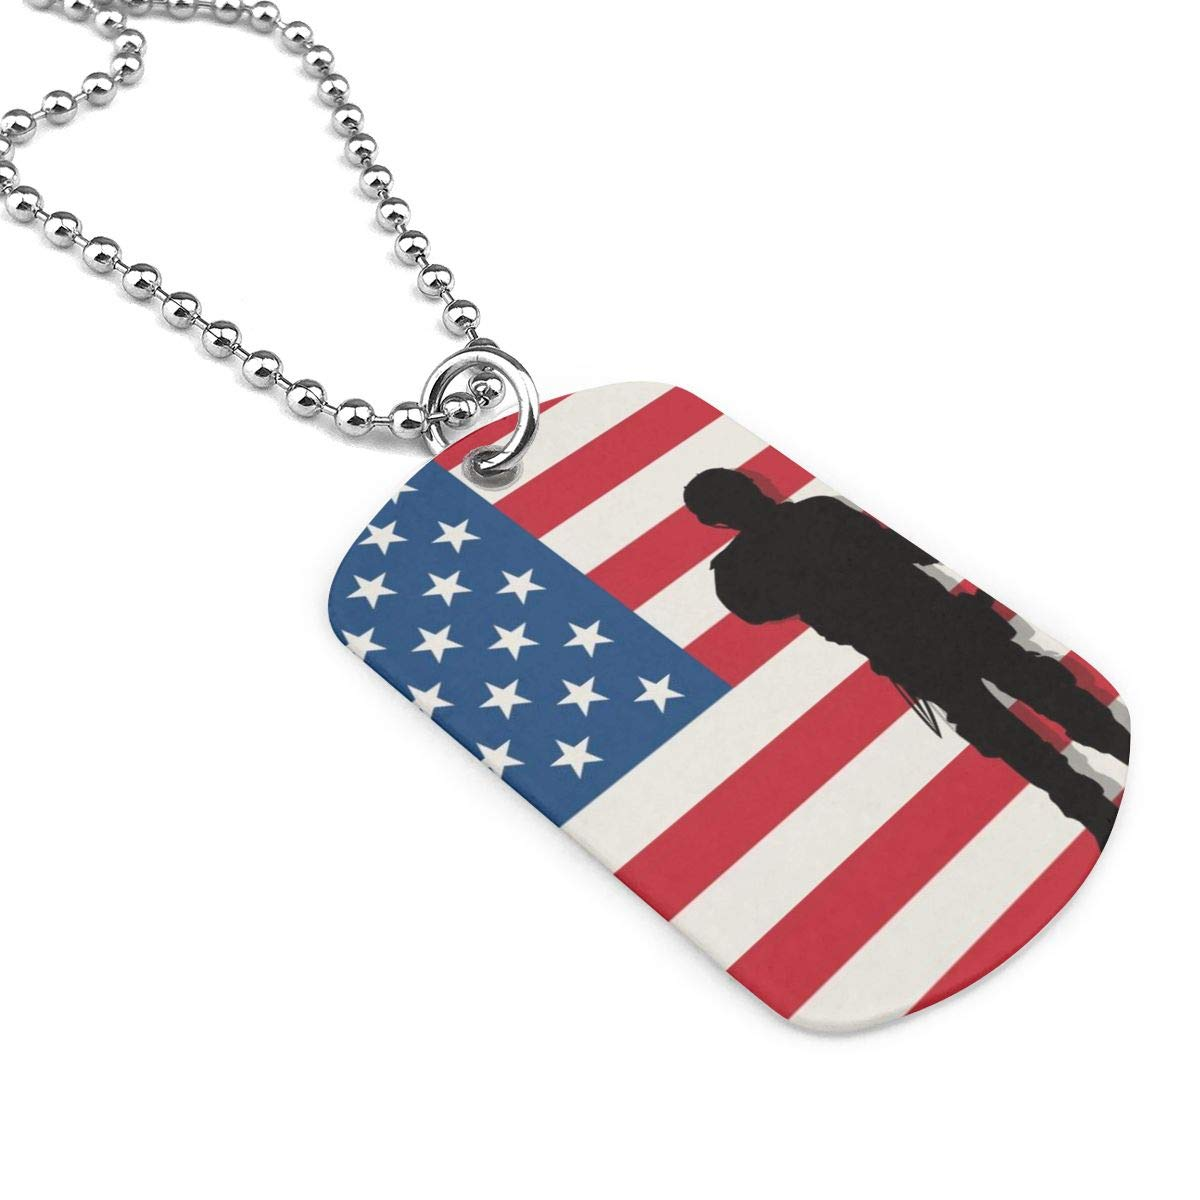 Armed Soldiers Jewelry Military Pendant Brand Necklace Metal Dog Tag